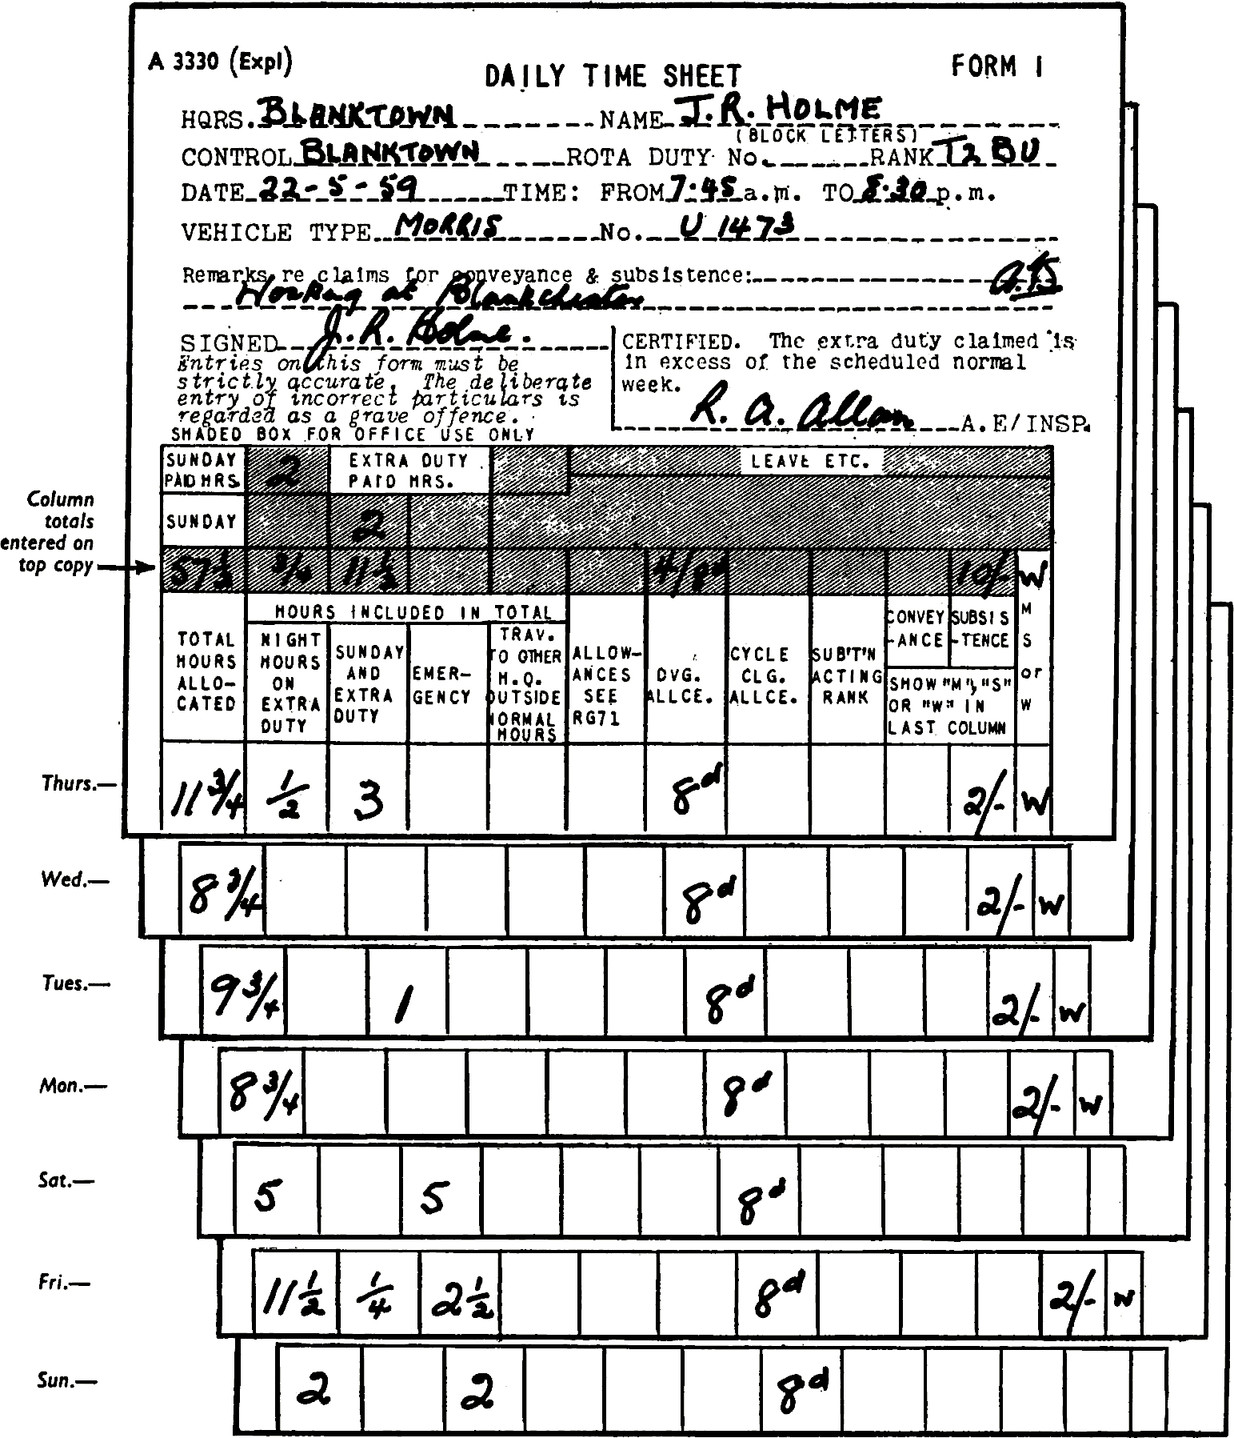 """Stacked DAILY TIME SHEET one for each day of the week. Form Thursday. HQRS.: Blanktown. Name: J.R. Holme (block letters). Control: Blanktown. Rota Duty No., blank field. Rank: T2 BU. Date: 22-5-59. Time: From 7.45a.m, TO 8.30p.m. Vehicle type: Morris. No.: U1473. Remarks re claims for conveyance & subsistence: working at blank(unreadable). Signed: (Signature) J.R. Holme. Entries on this form must be strictly accurate. The deliberate entry of incorrect particulars ts regarded as a grave offence. CERTIFIED. The extra duty claimed """"ts: in excess of the scheduled normal week. Signed: R. A. Allan. A.E/INSP. Sunday paid HRS.: 2. Sunday: 57 1/2. Total hours allocated: 11 3/4. Night hours on extra duty: 1/2. Sunday an extra duty: 3. Trav. to other H.Q. outside normal hours, blank field. Allowances see RG71, blank fliend. DVG. Allce.: 8d Cycle Clg. Allice., blank field. Sub't'n acting rank, blank field. Form Wednesday, total hours: 8 3/4. Form Tuesday, total hours: 9 3/4. Form Monday, total hours: 8 3/4. Form Saturday, total hours: 5. Form Friday, total hours: 11 1/2. Night hours: 1/4. Sunday and extra duty: 2 1/2. Form Sunday, total hours 2. Sunday and extra duty: 2. Each day has DVG. Allce. as 8d."""